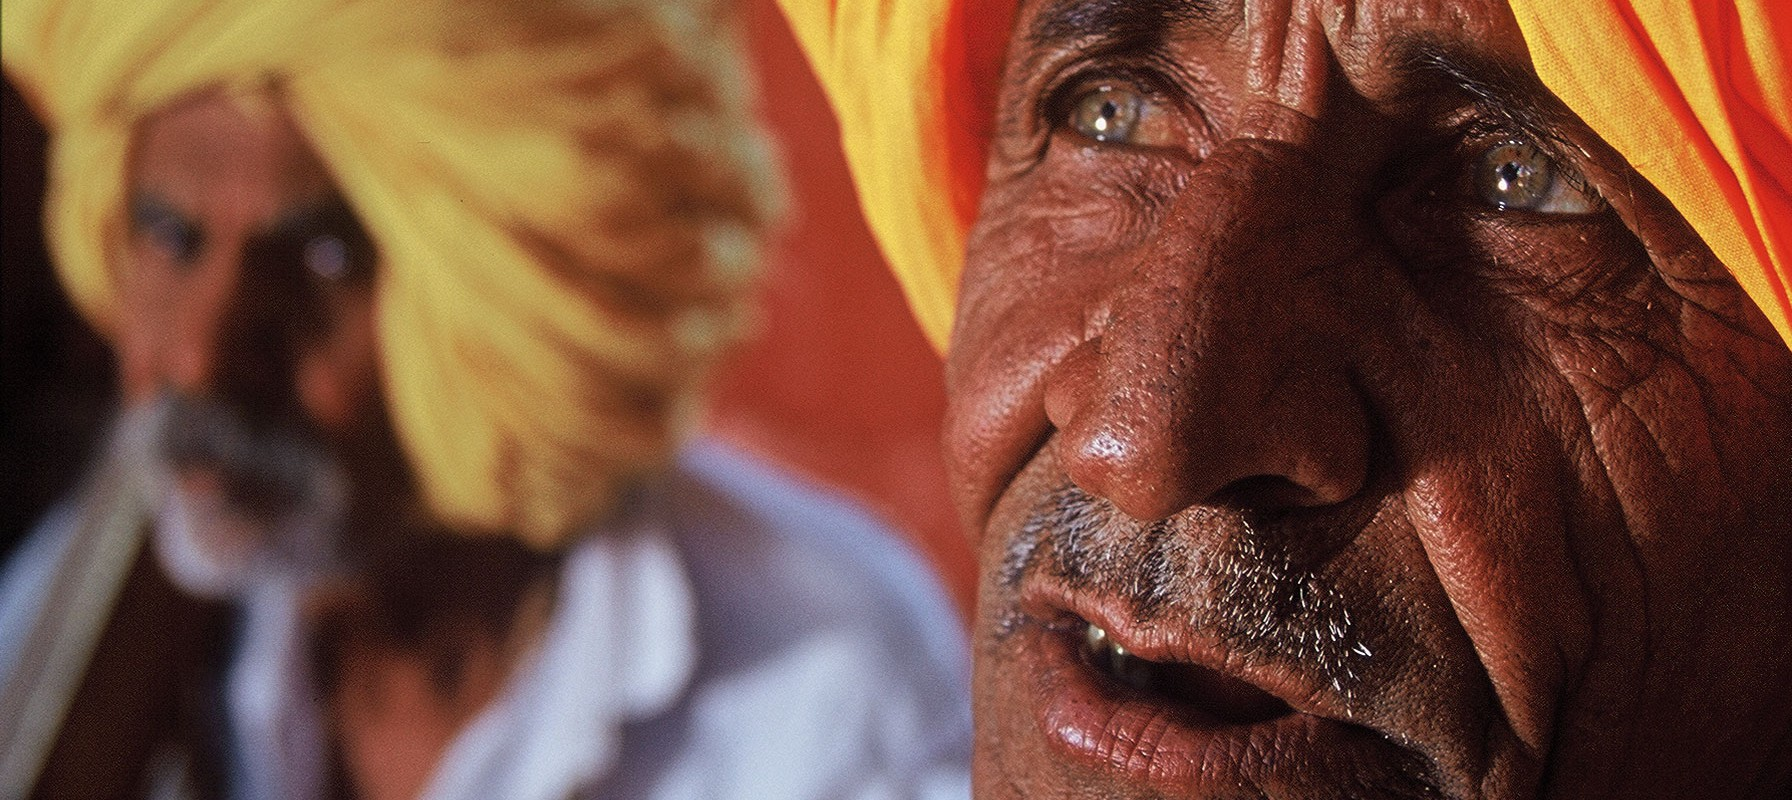 m_cu_old-man-orange-turban